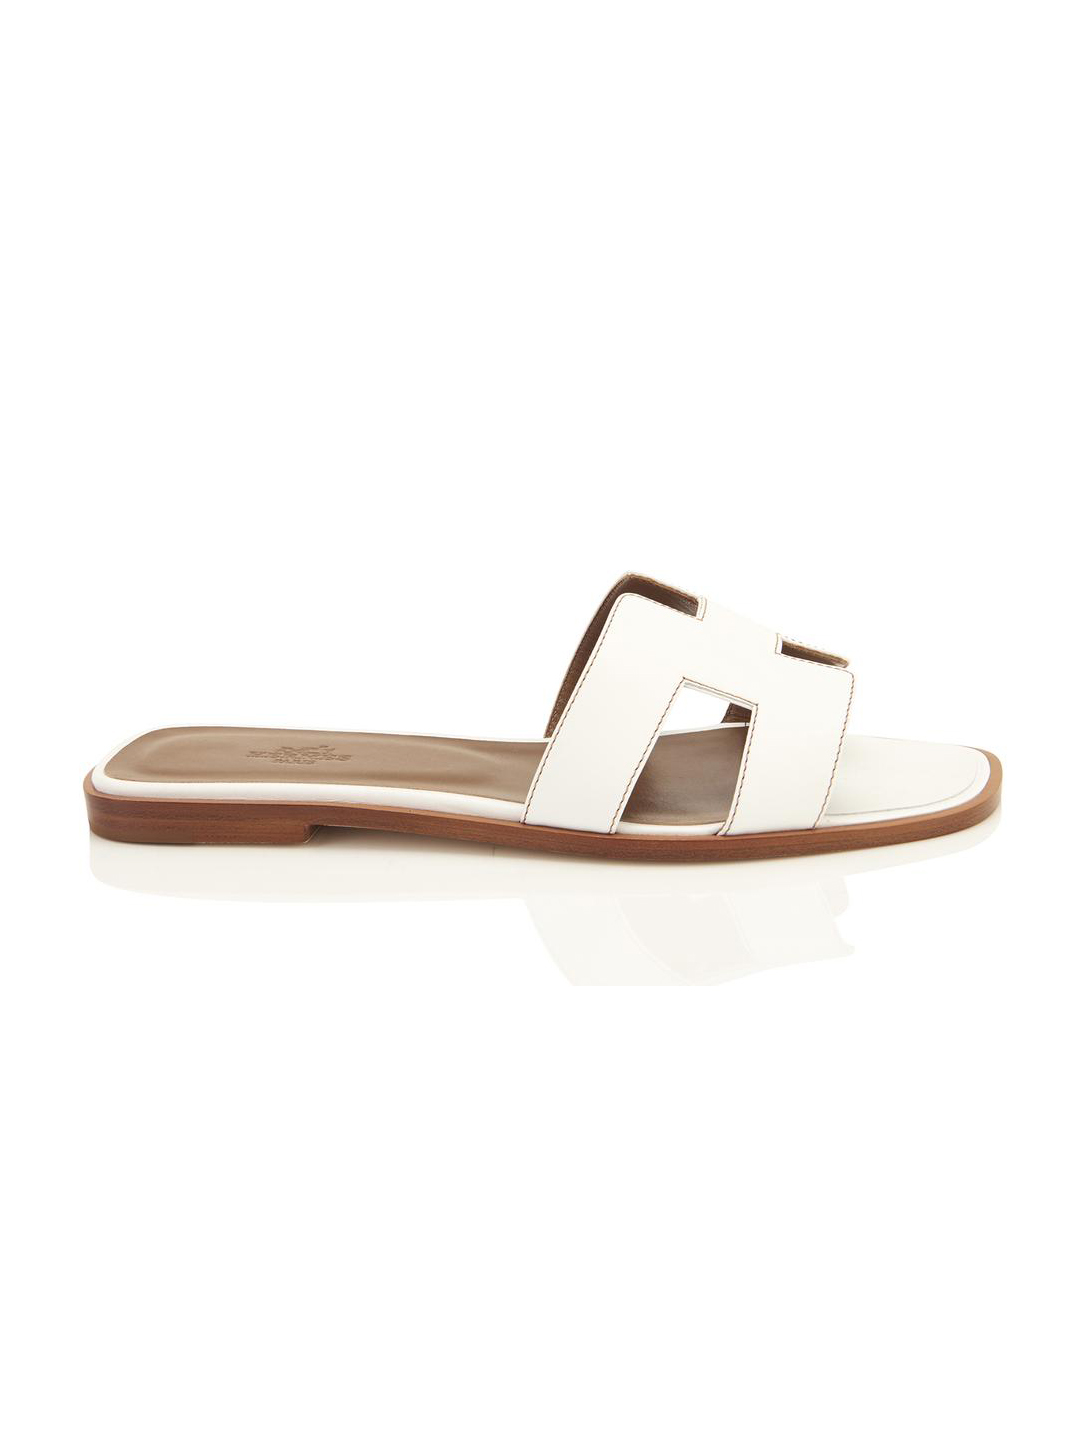 hermes-white-oran-orans-flat-39-sandals-size-us-85-regular-m-b-21753760-3-0.jpg